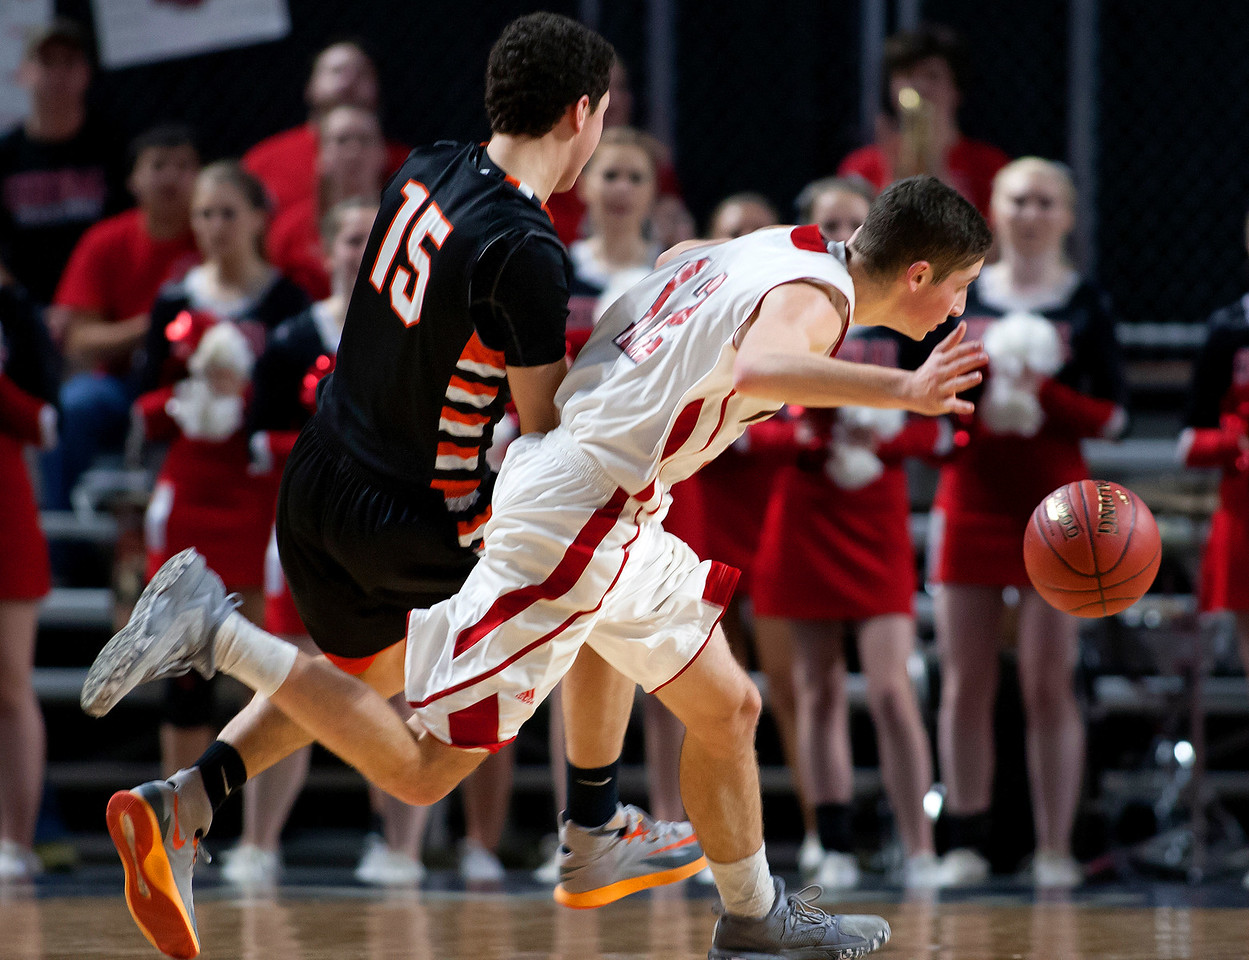 BANGOR, Maine -- 02/17/2017 -- Winslow's Jackson Morneault (left) trips up Central's Caleb M. Shaw during their Class B boys basketball quarterfinal game at the Cross Insurance Center in Bangor Friday. Ashley L. Conti | BDN